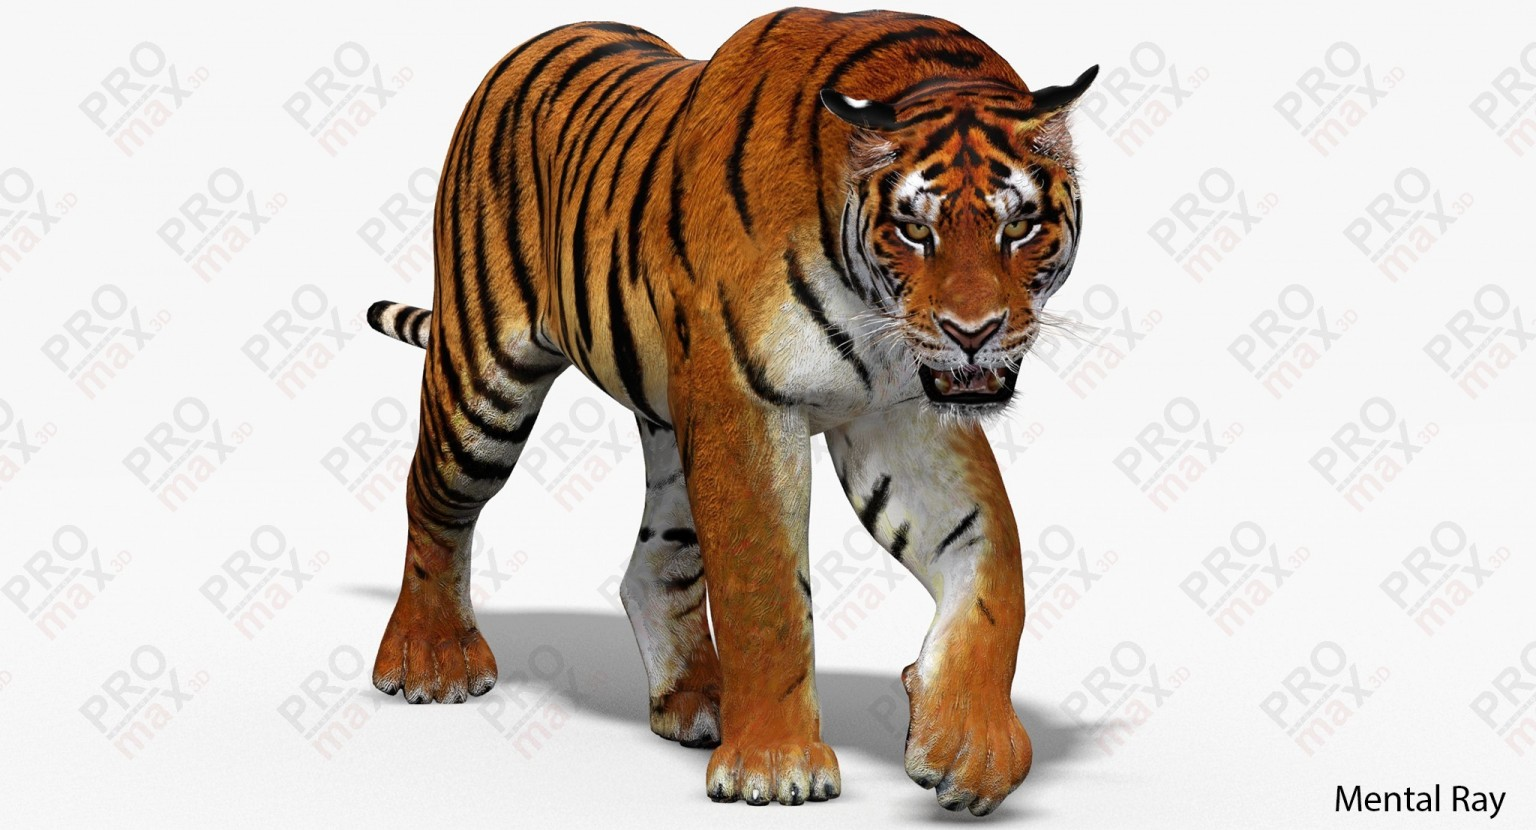 1536x830 - Animated Tiger 20